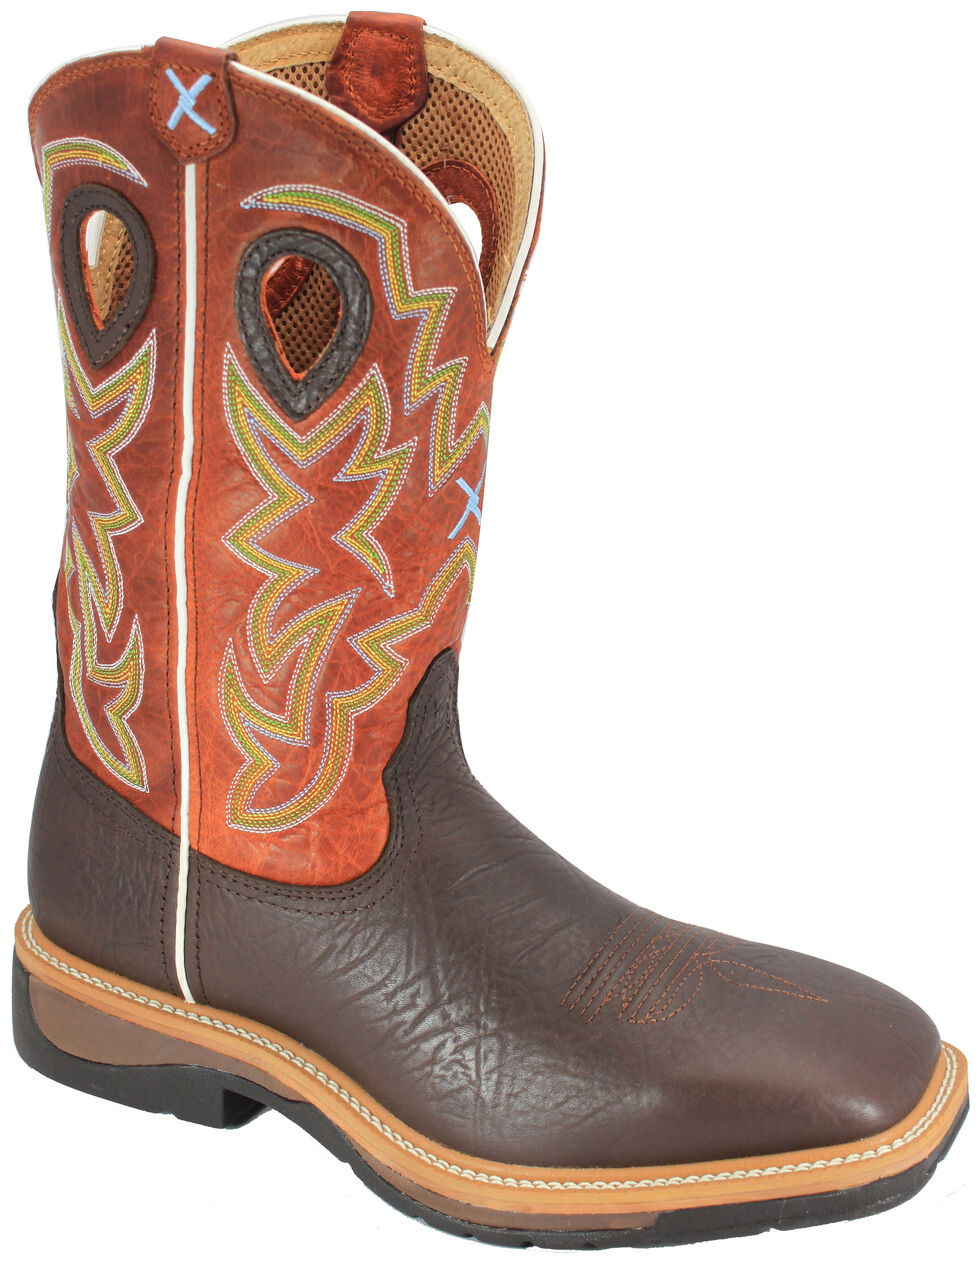 Twisted X Orange Lite Cowboy Work Boots - Soft Square Toe, Brown, hi-res